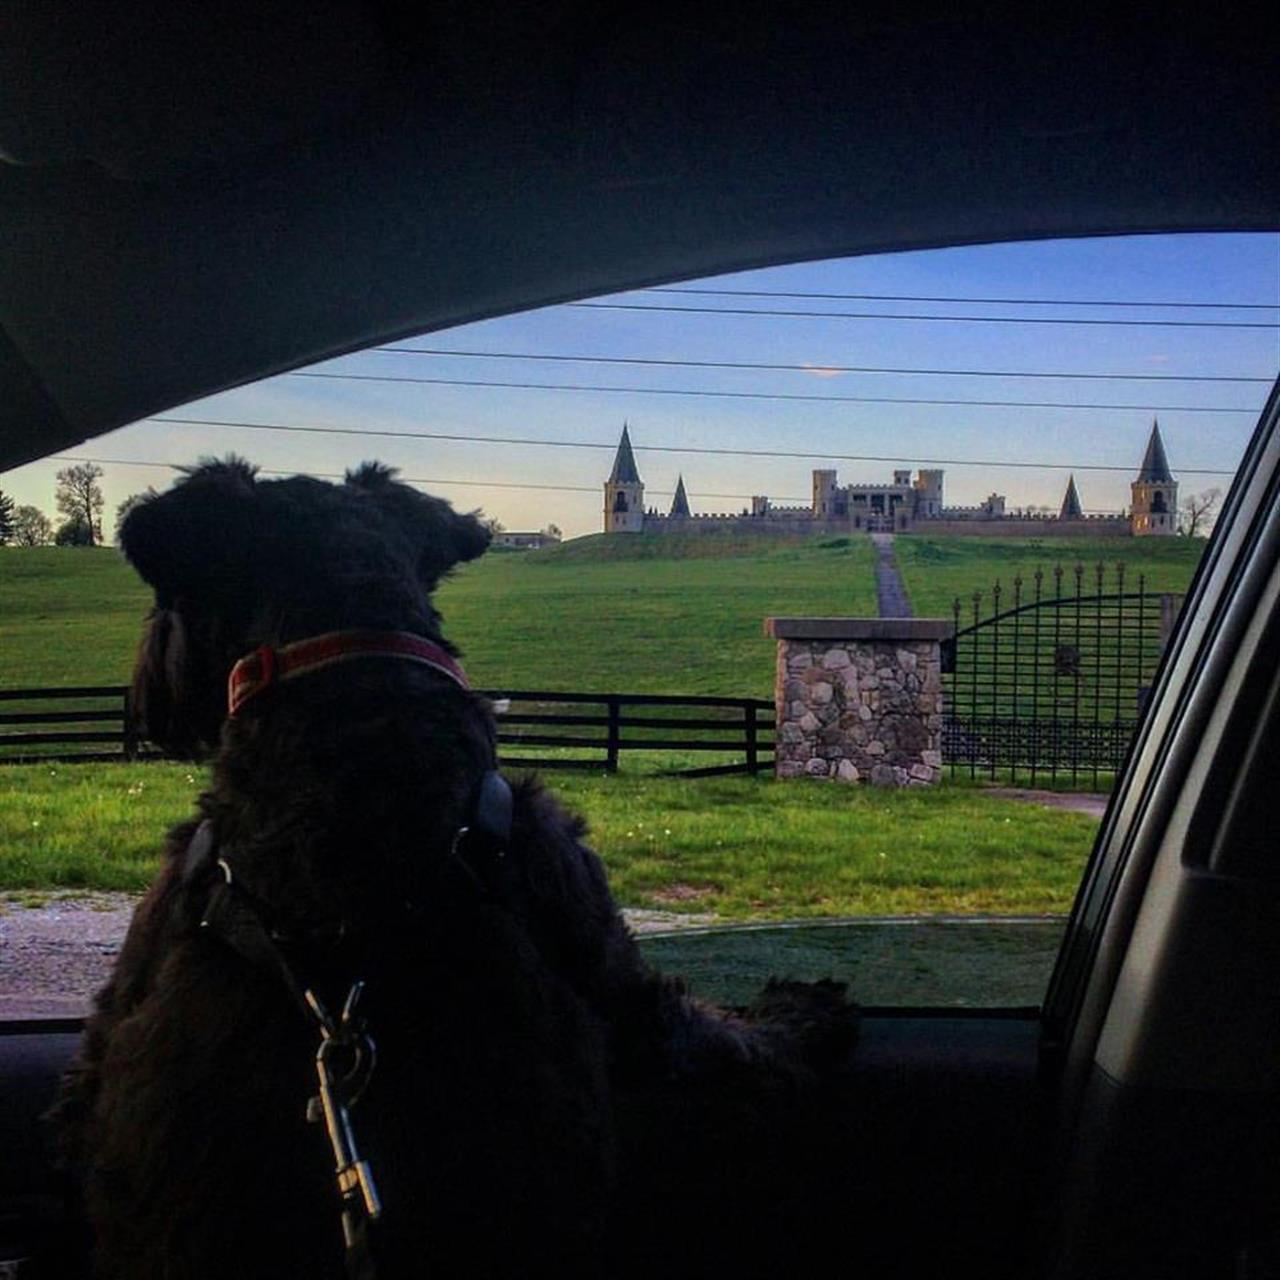 Puppy looking at the famous Castle Post in Versailles, KY